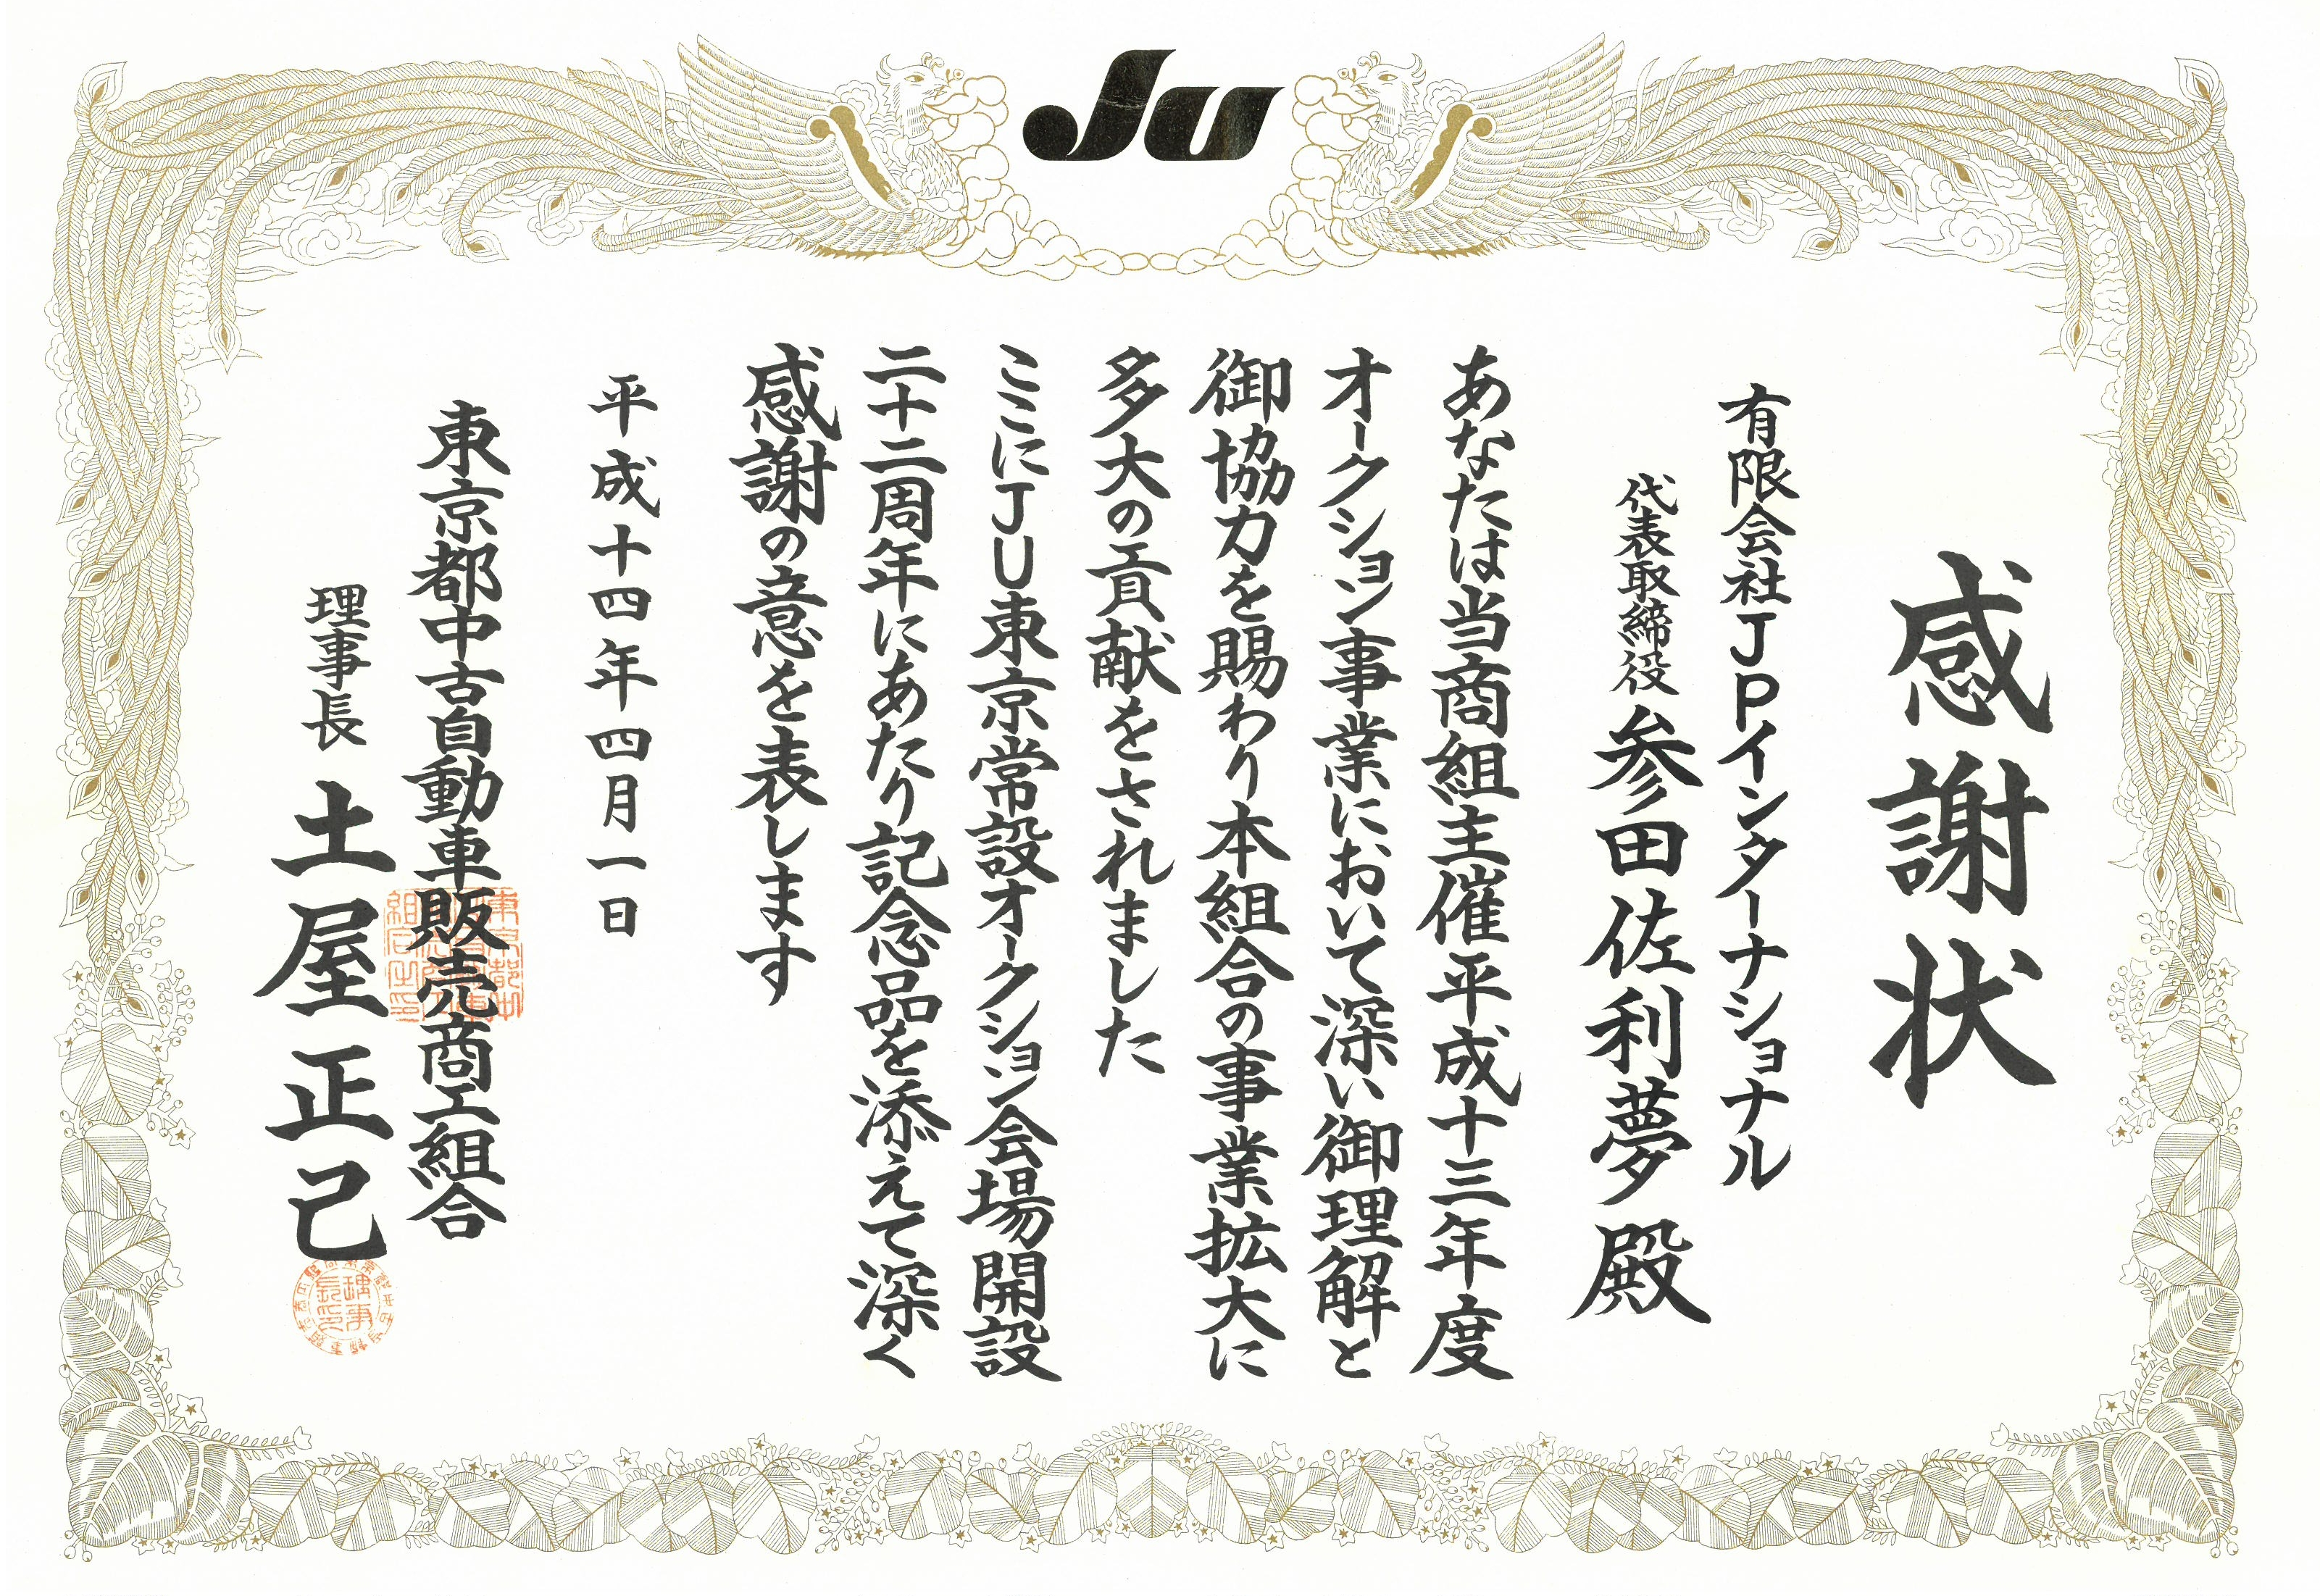 2002 April 1st Appreciation Award of exhibition JU Auto Auction